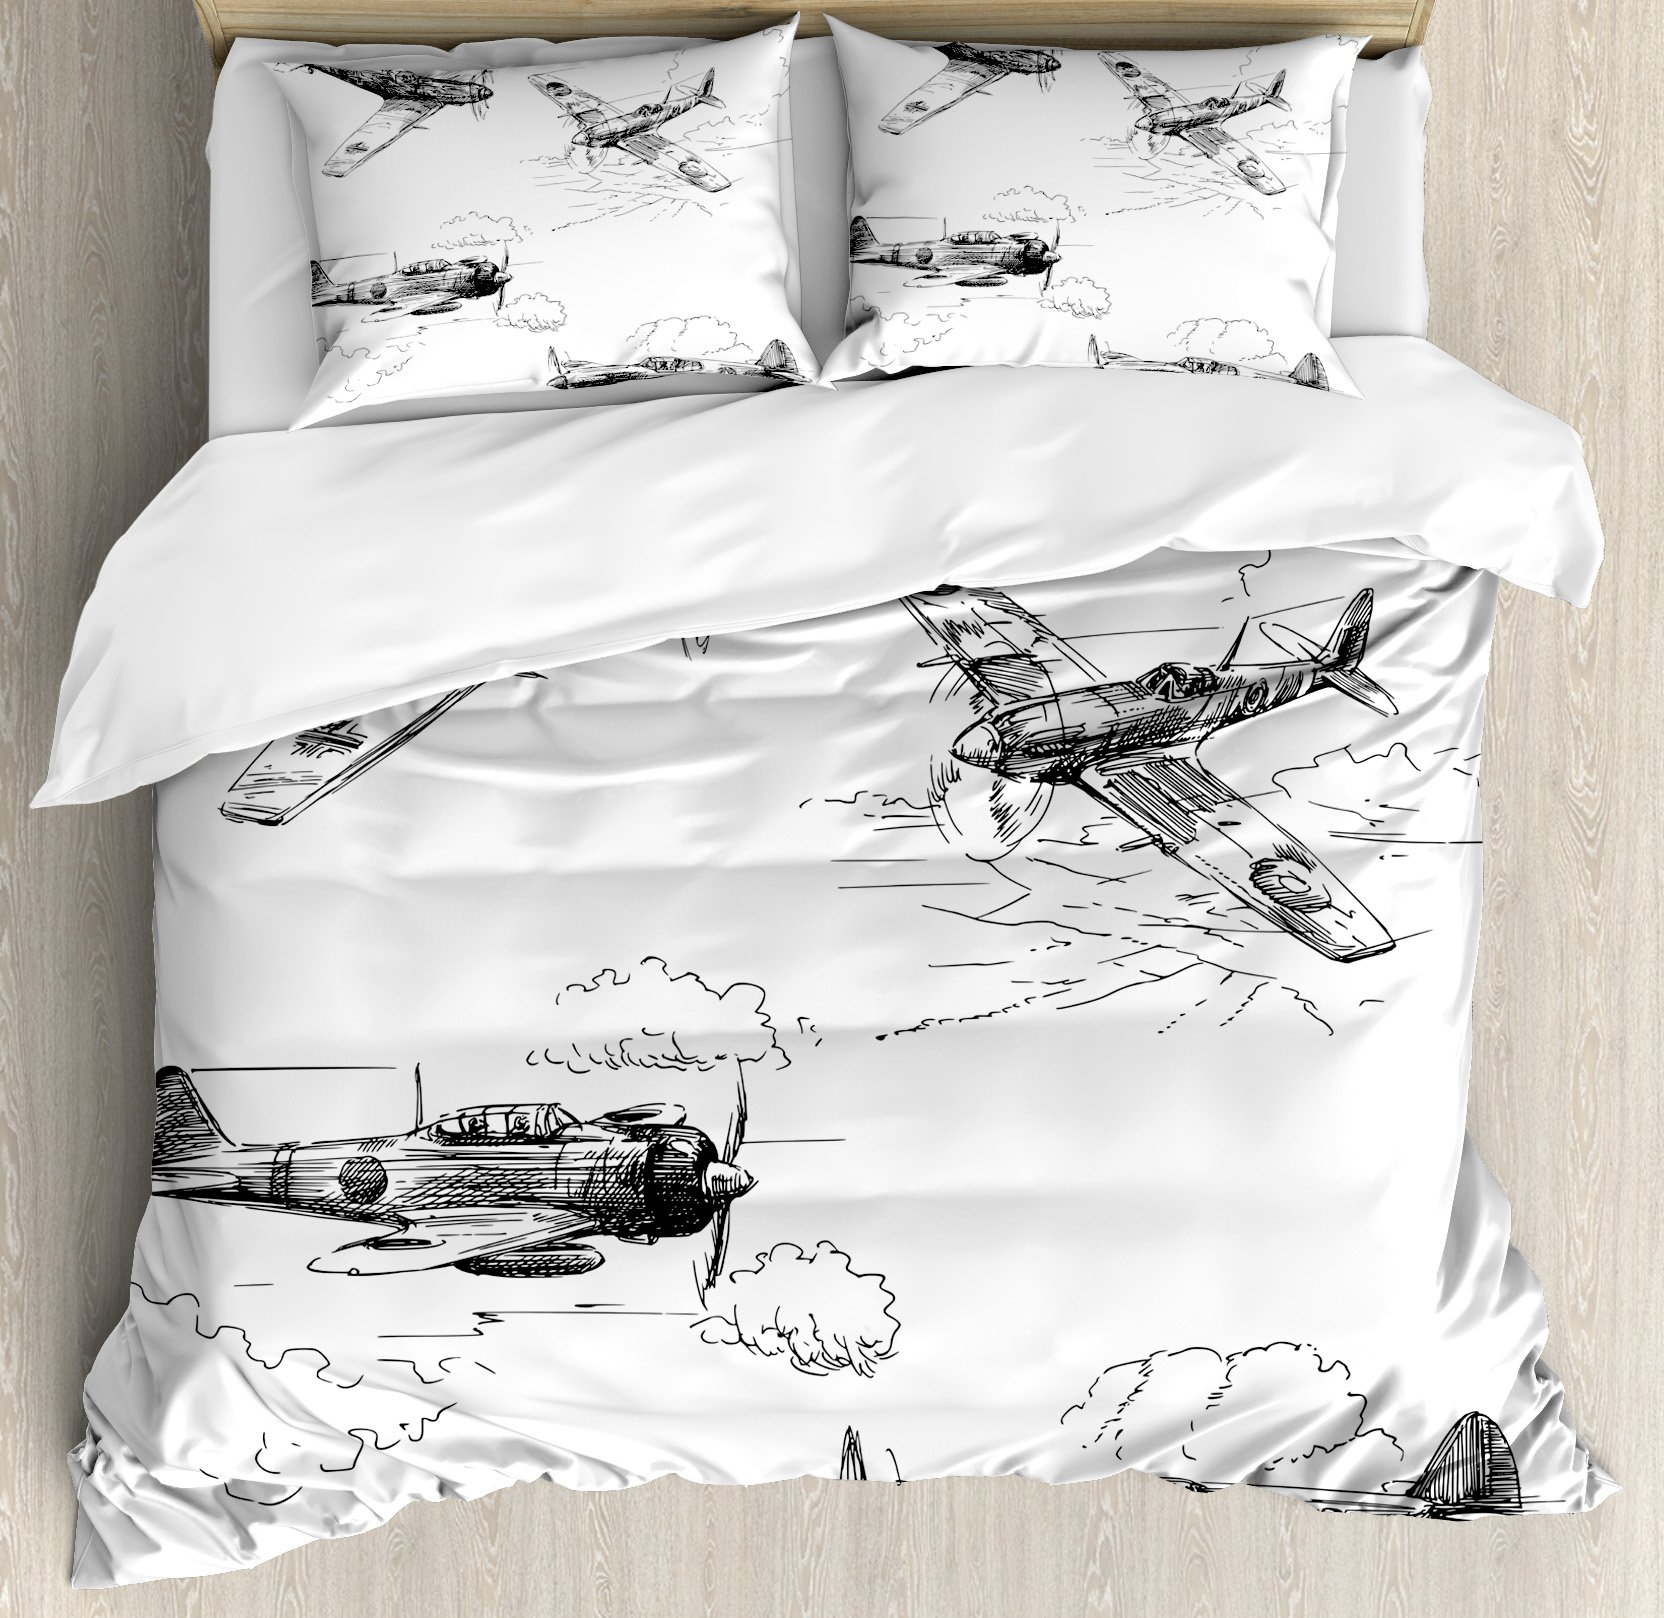 Airplane Decor Queen Size Duvet Cover Set by Ambesonne, World War Aircraft Army German Pilot Veteran Aggression Historic Vehicle Illustration, Decorative 3 Piece Bedding Set with 2 Pillow Shams